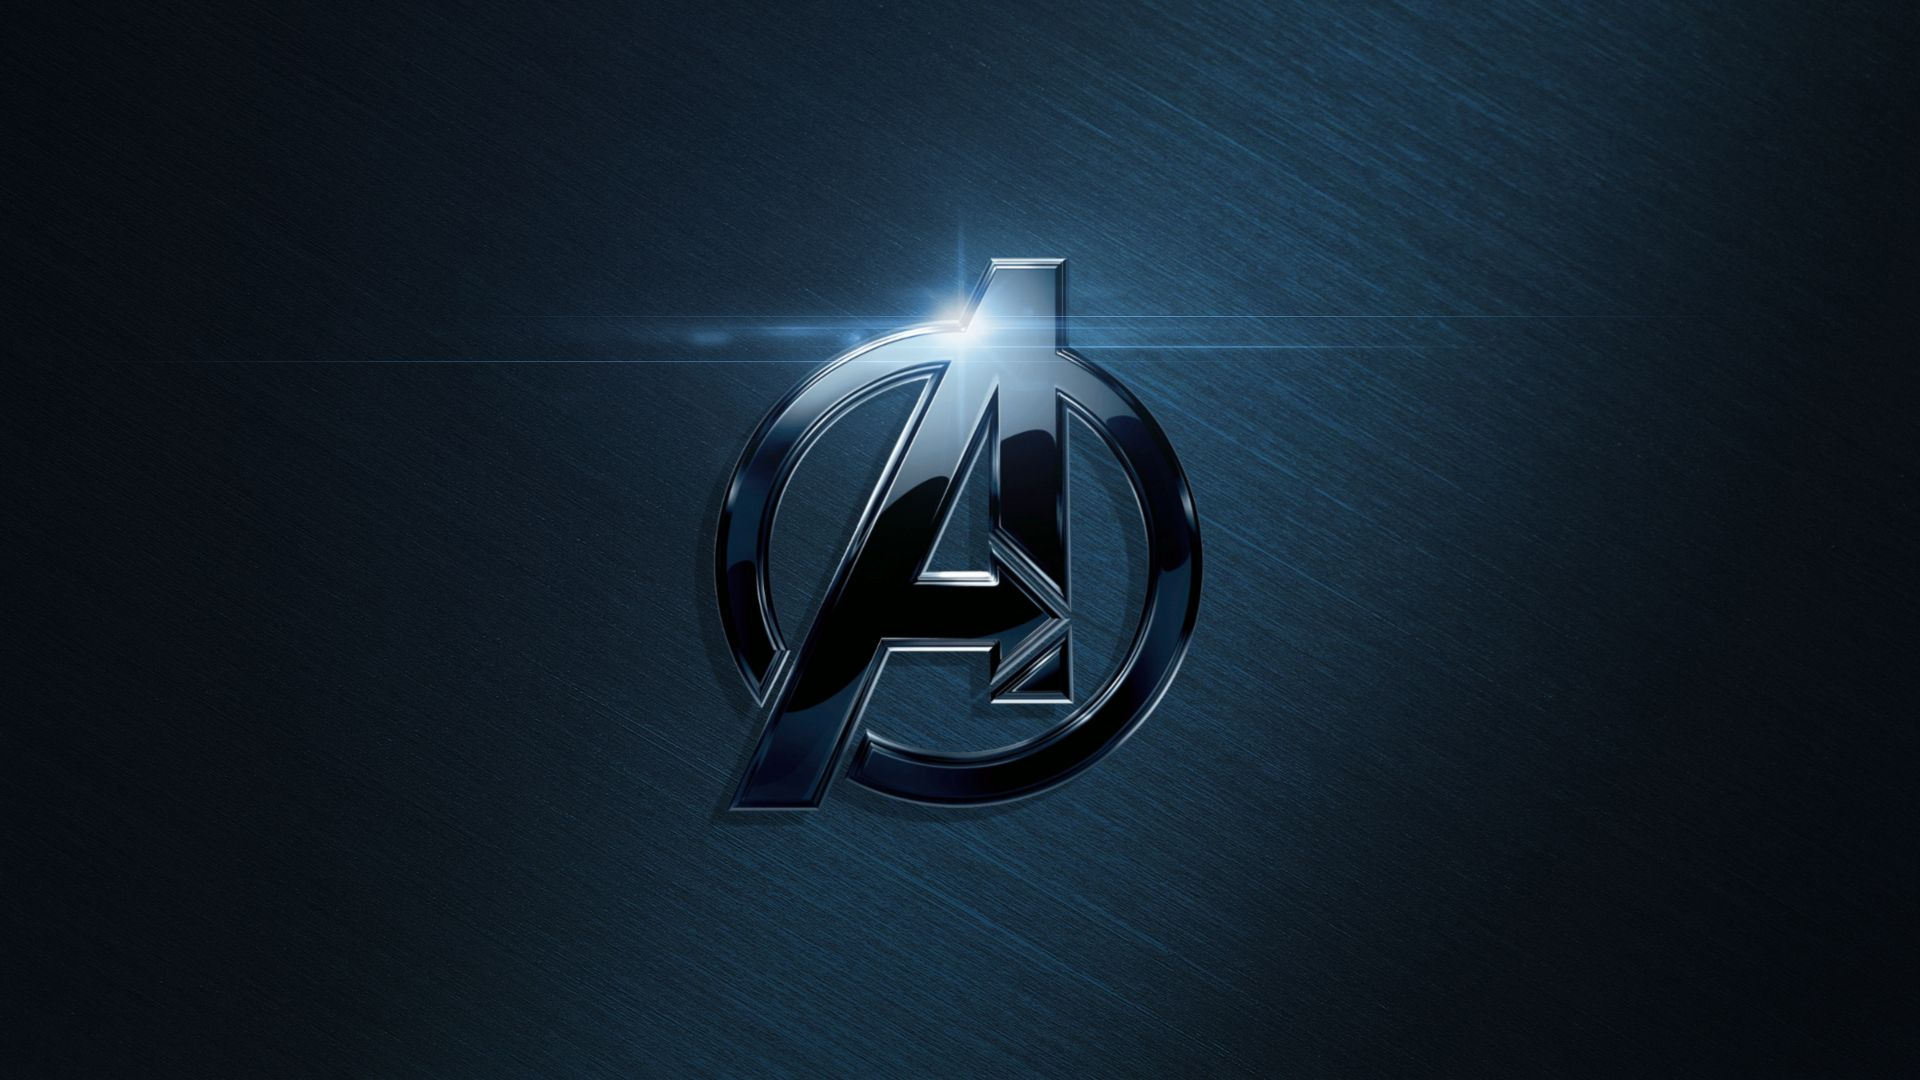 The Avengers Wallpapers, Movie, Best HD 1080p 17 | My nerd is showing | Avengers wallpaper ...